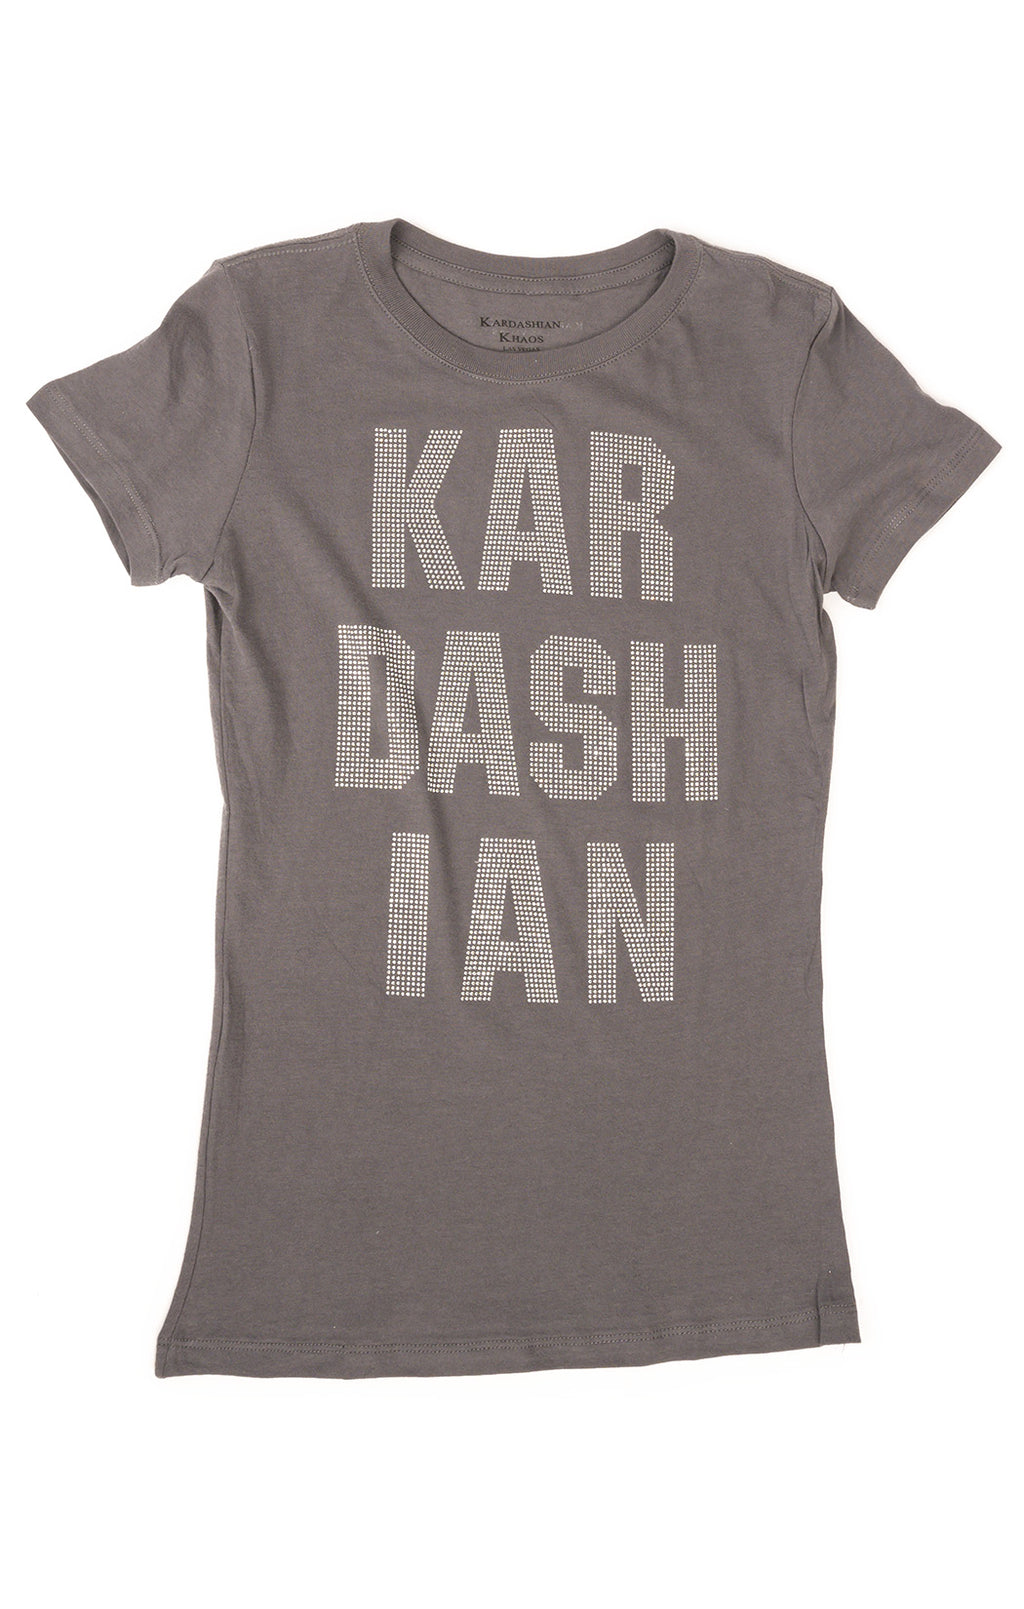 Front view of KARDASHIAN KHAOS T-Shirt Size: Medium